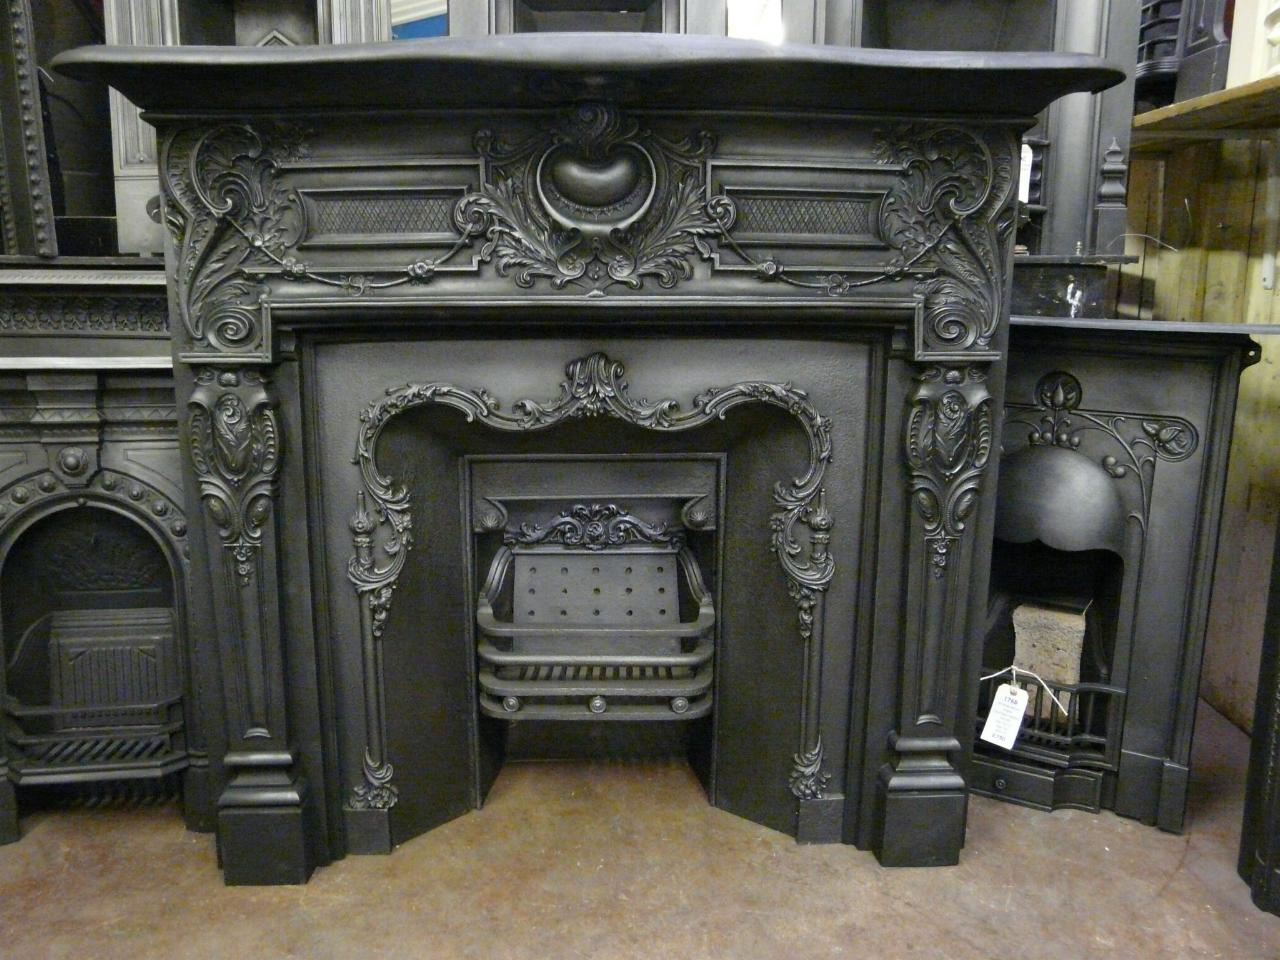 Victorian Cast Iron Fire Surround - 008CS - Old Fireplaces